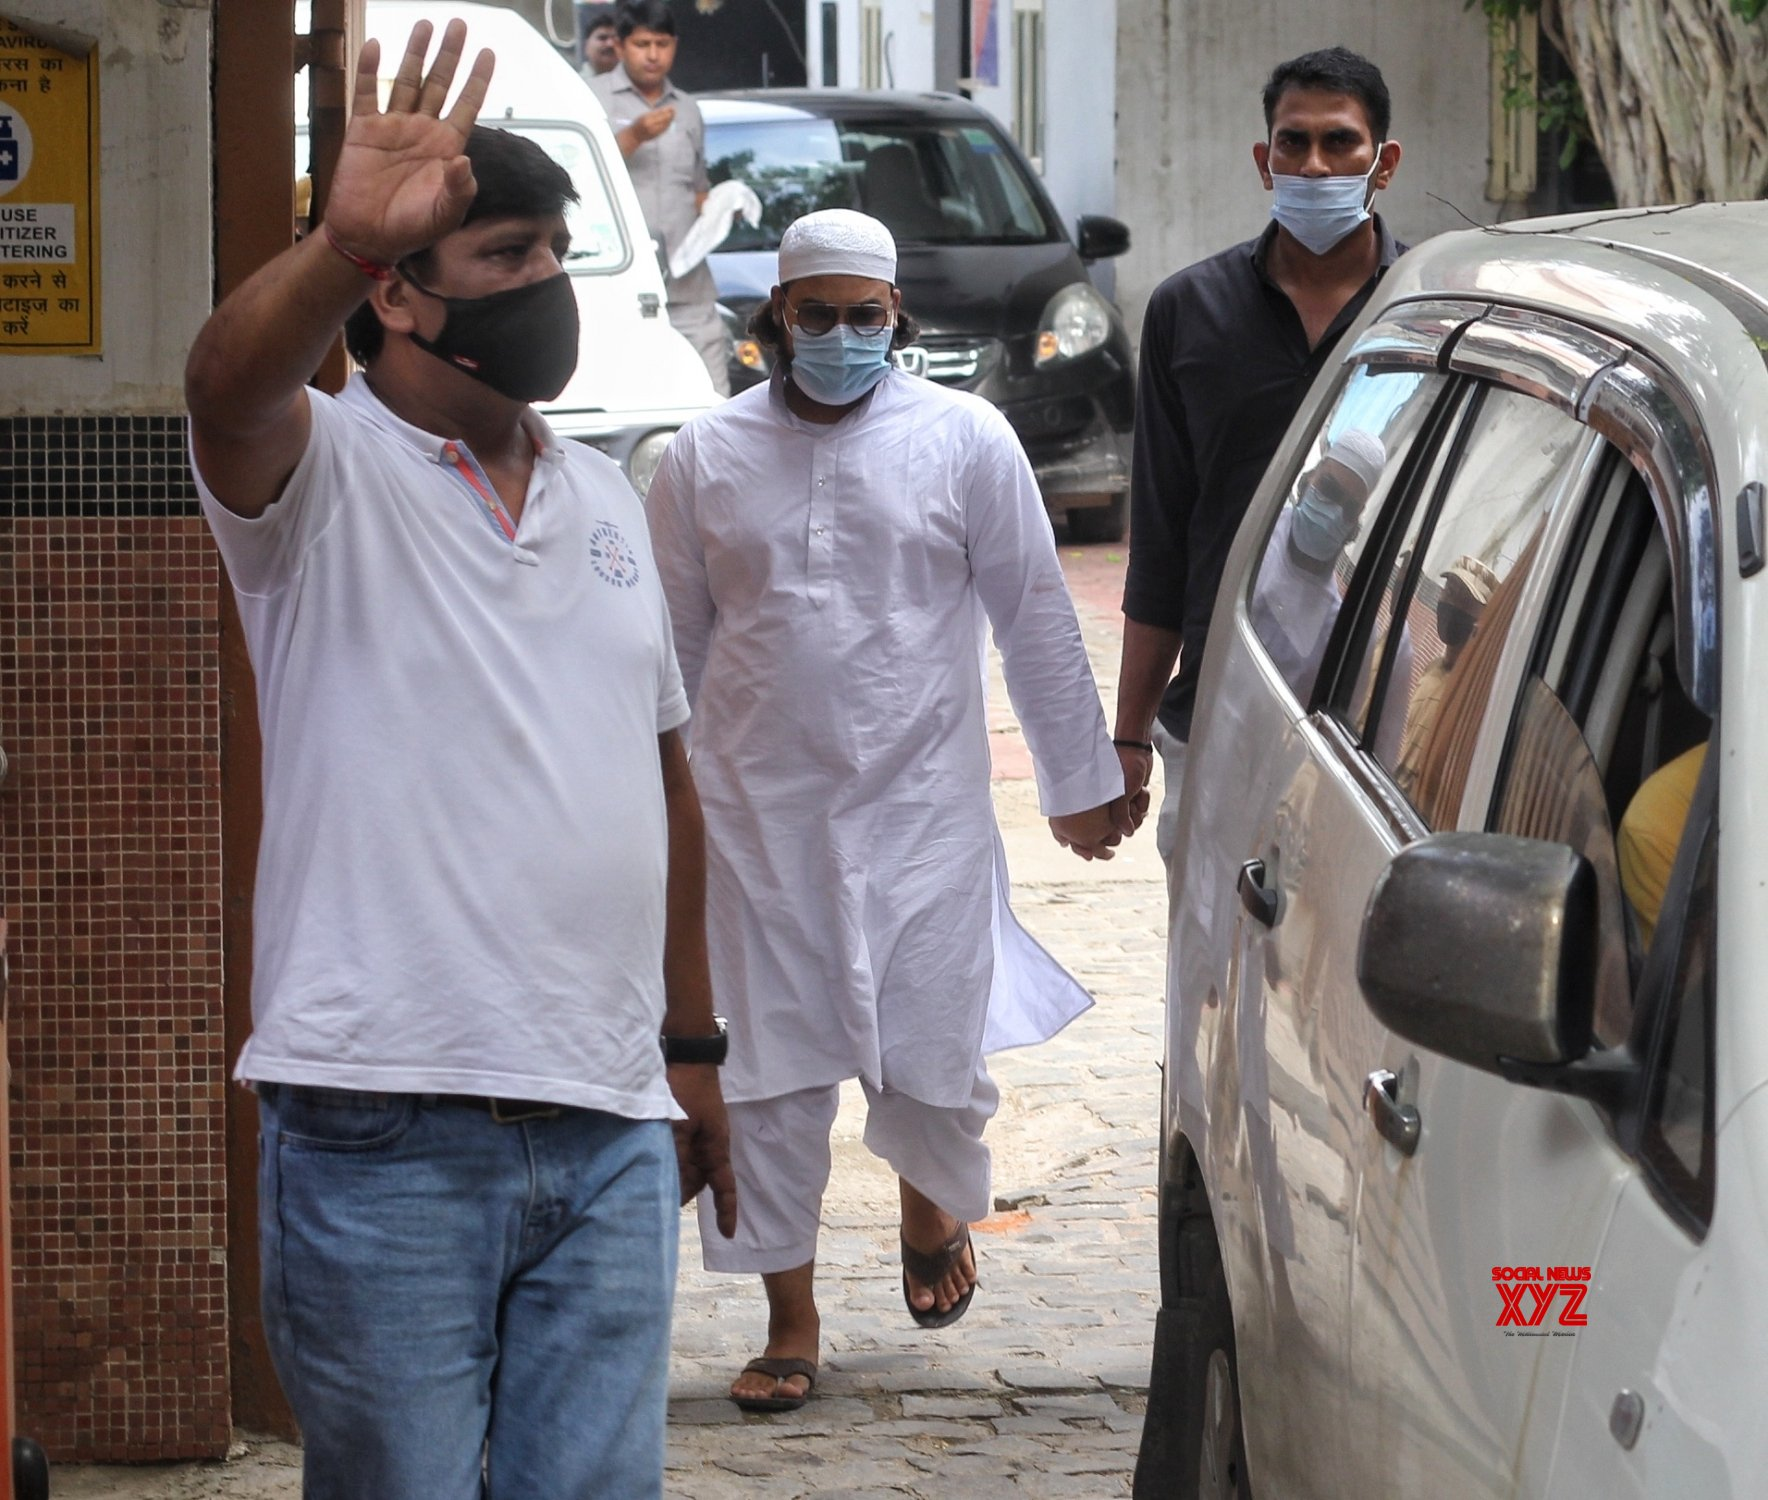 New Delhi : Special Cell of Delhi Police has arrested six suspected terrorists from Special Cell Office Lodhi Colony in New Delhi #Gallery